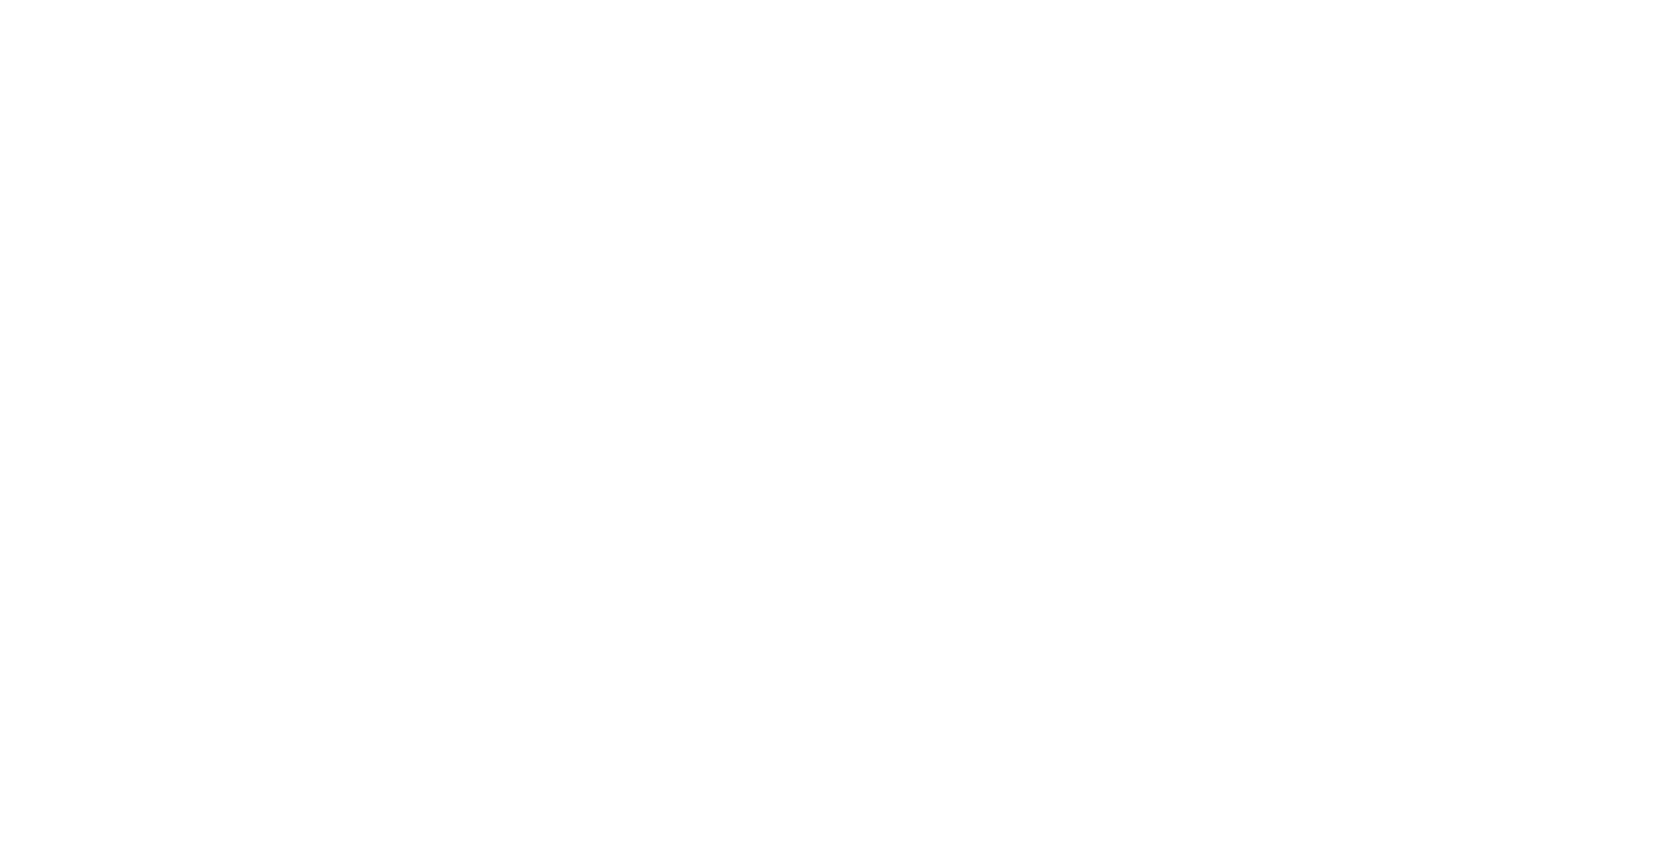 https://maroochy.org/wp-content/uploads/2021/04/IDSS-logo_White.png